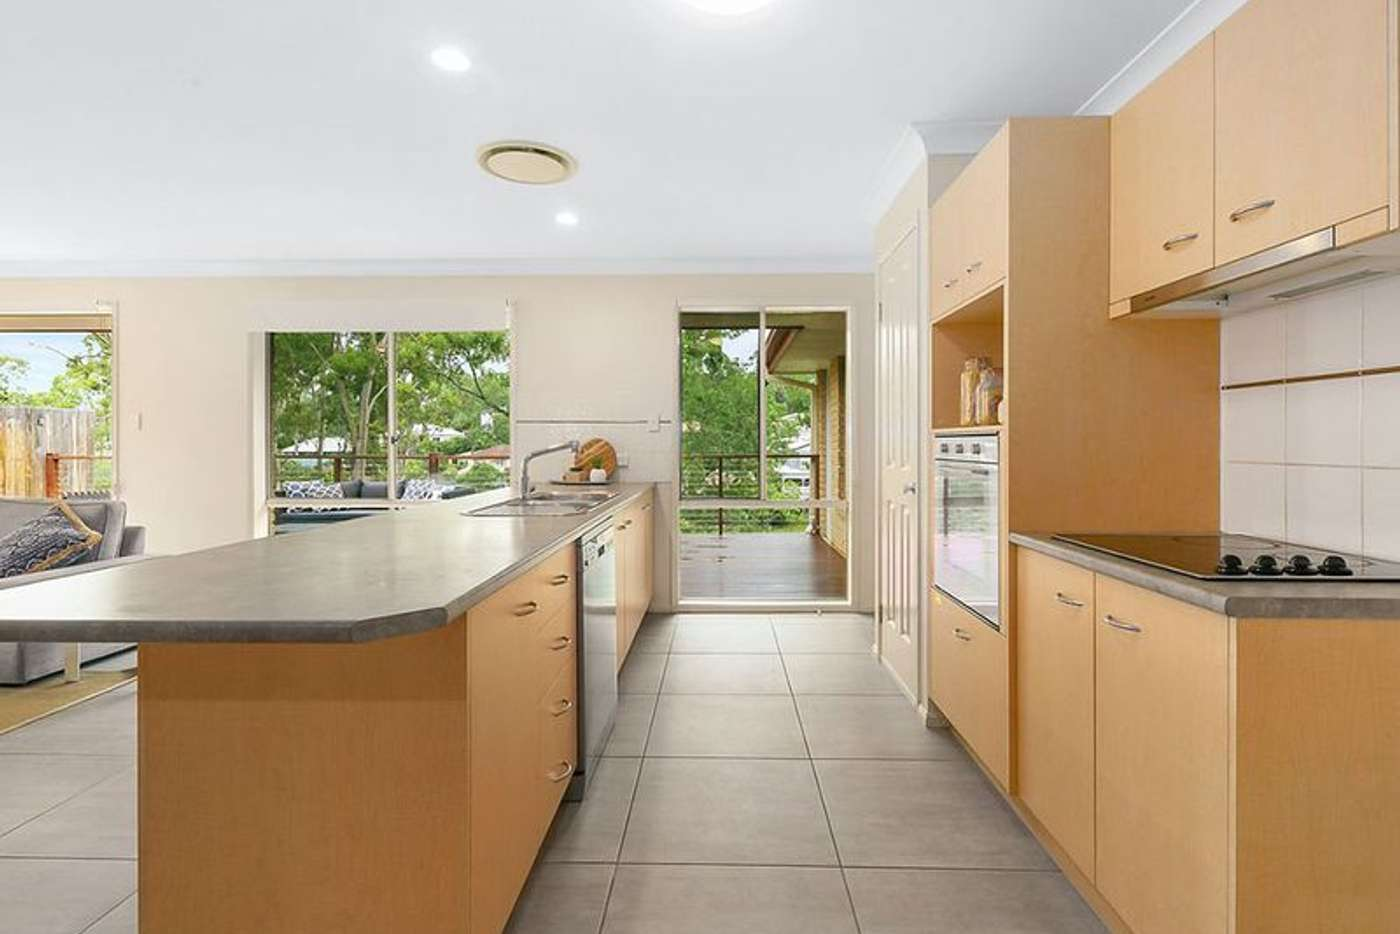 Seventh view of Homely house listing, 23 Parkway Place, Kenmore QLD 4069